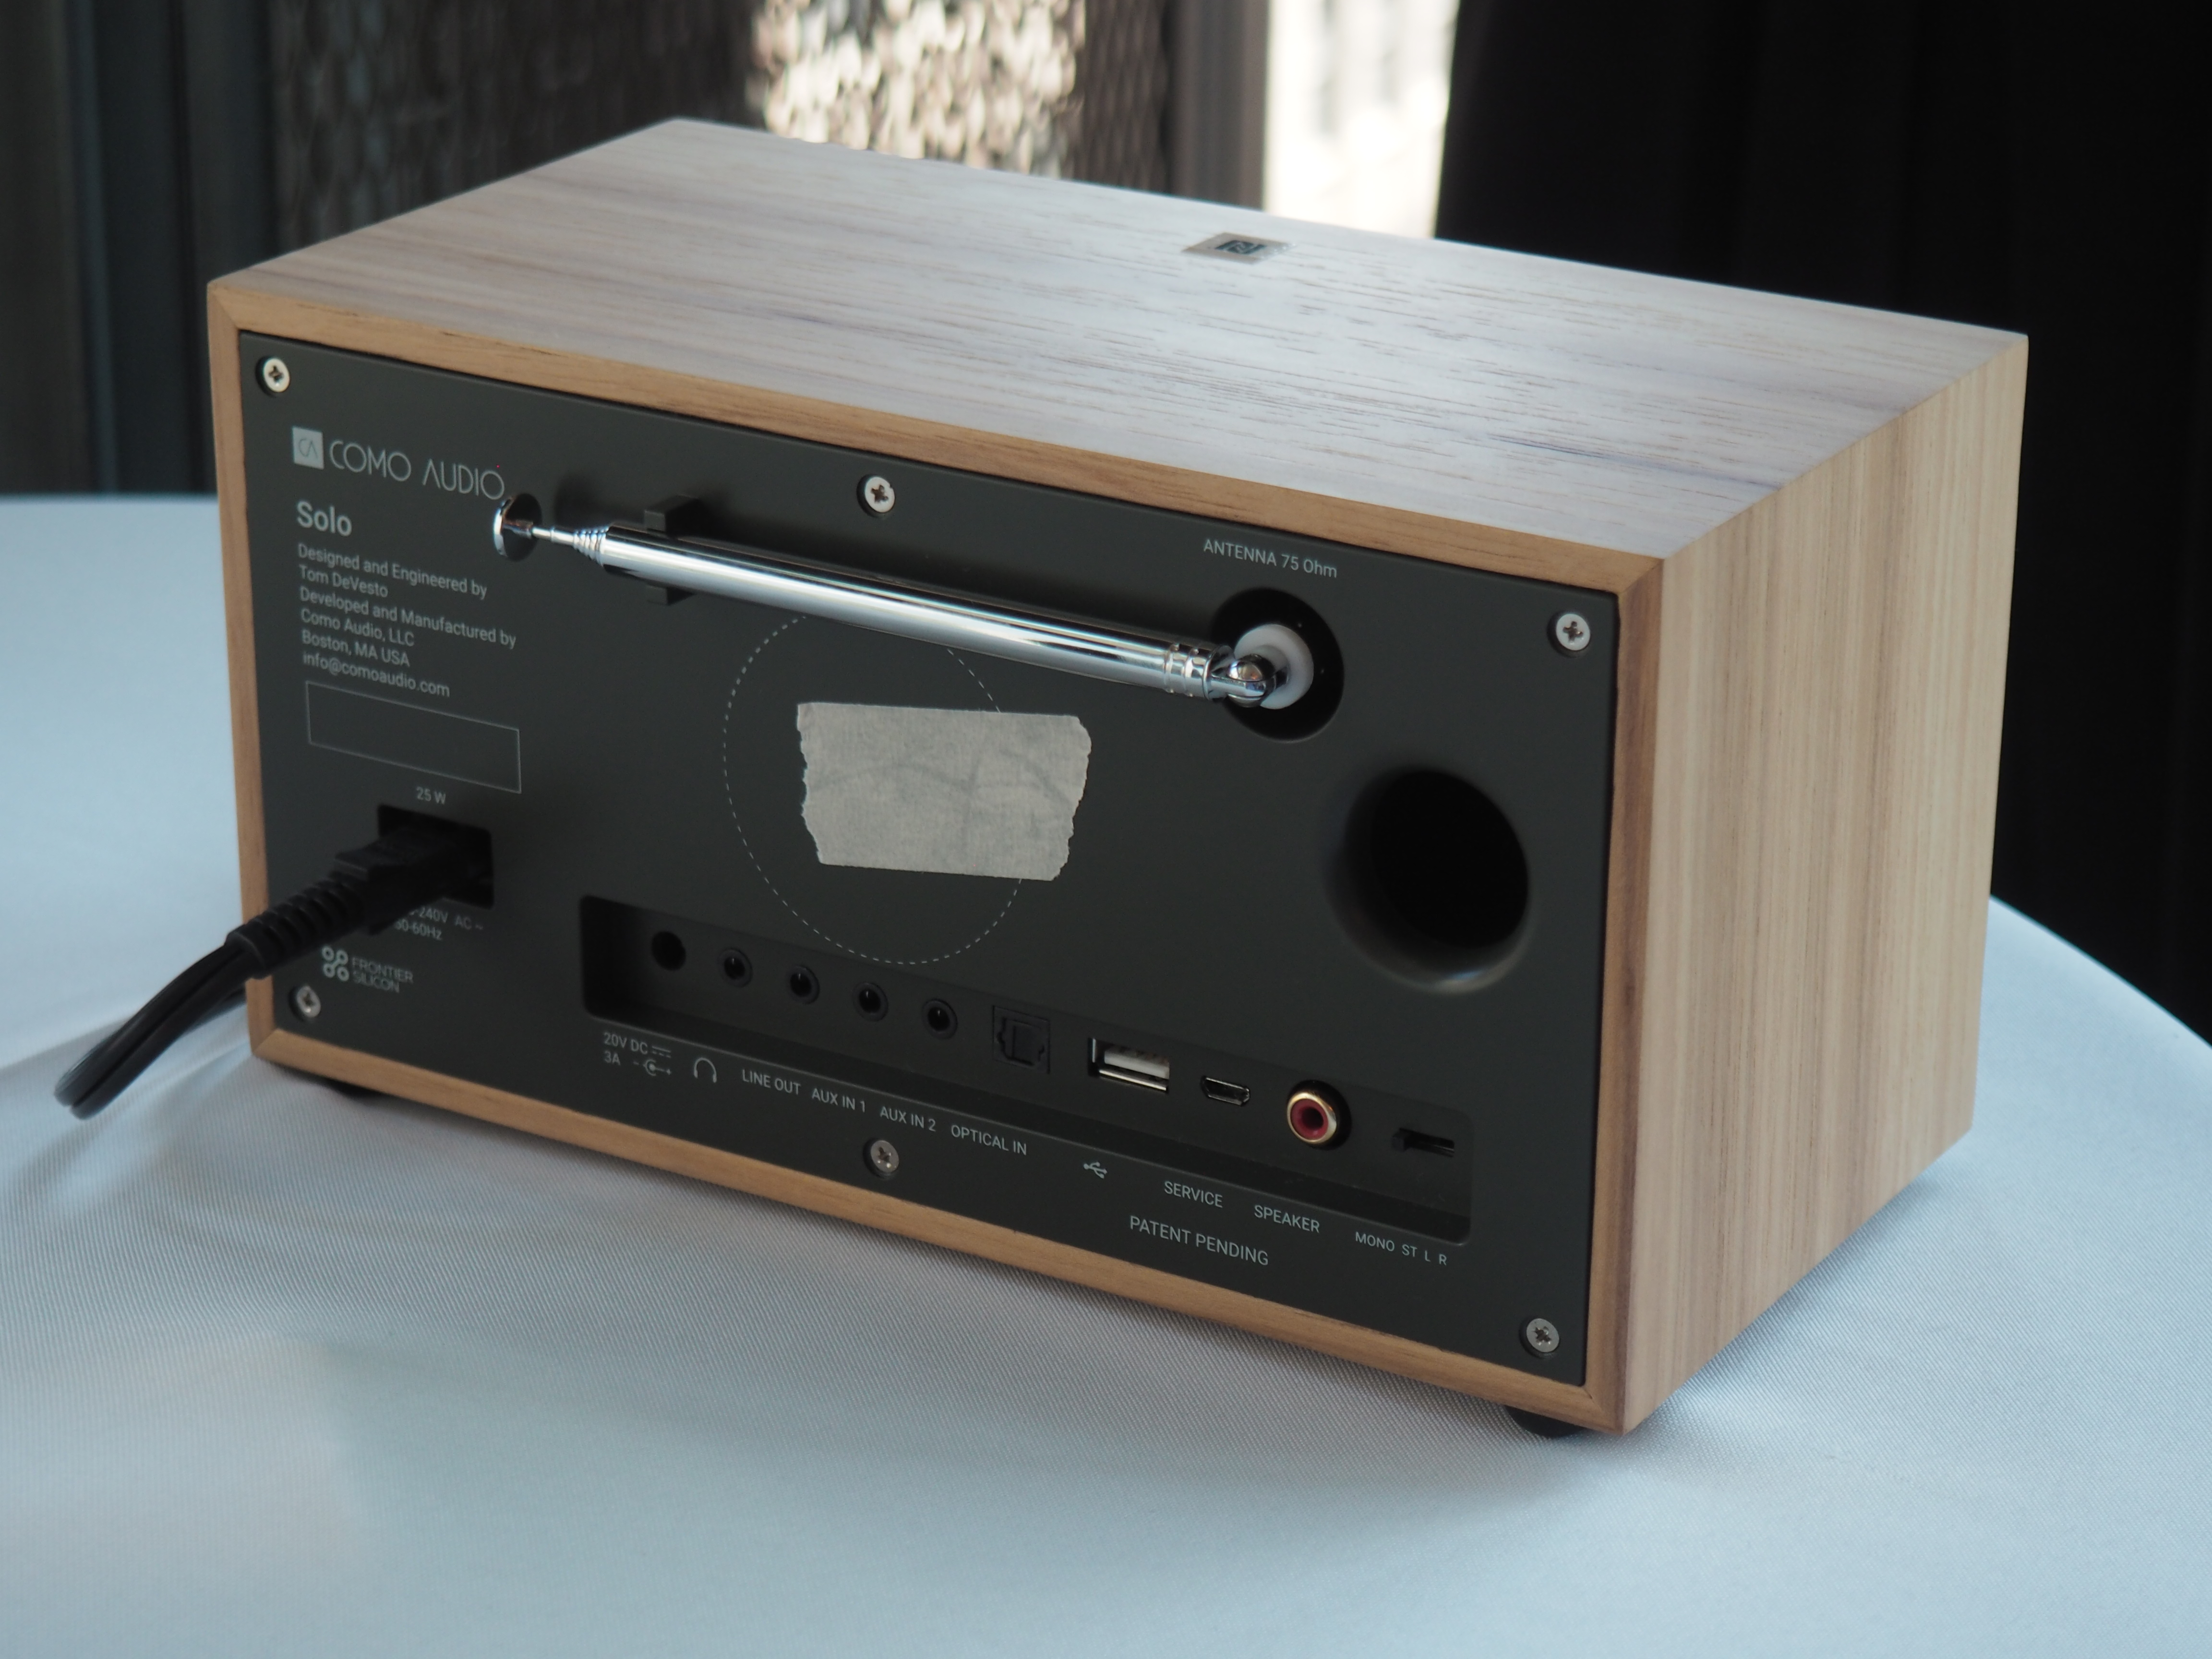 Tivoli Radio Designer Tivoli Audio S Founder Launches A Kickstarter Campaign For His New